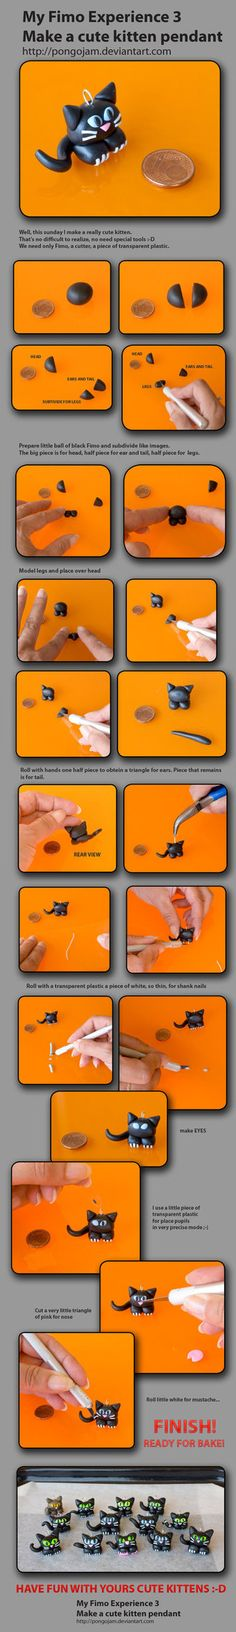 Ilaria Gorin's photo tutorial for little kitty charm.  Sculpey or Fimo